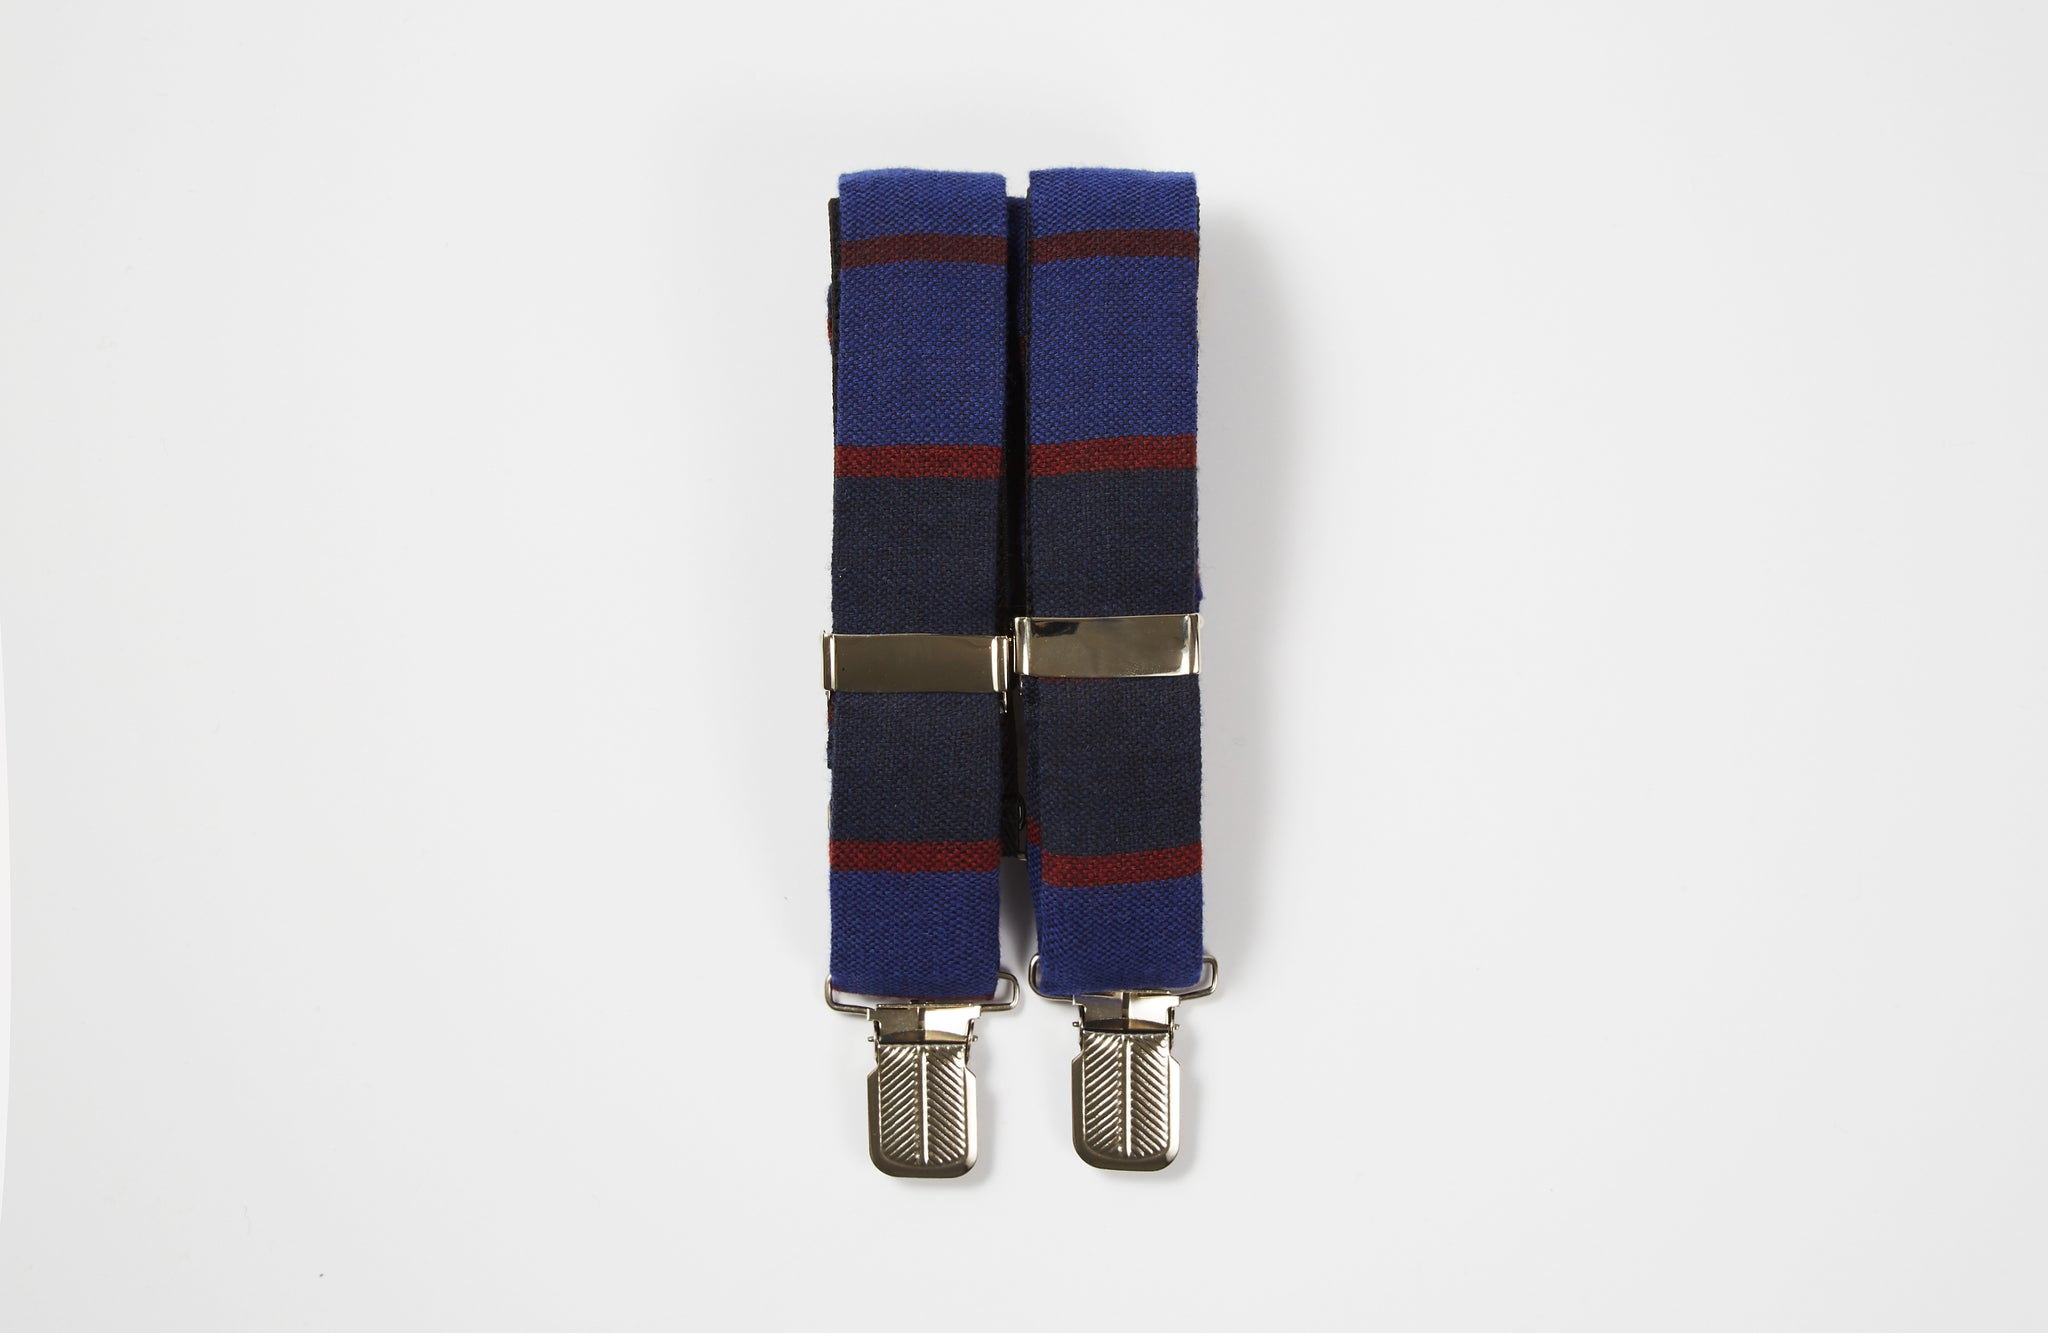 The Gramercy Suspenders